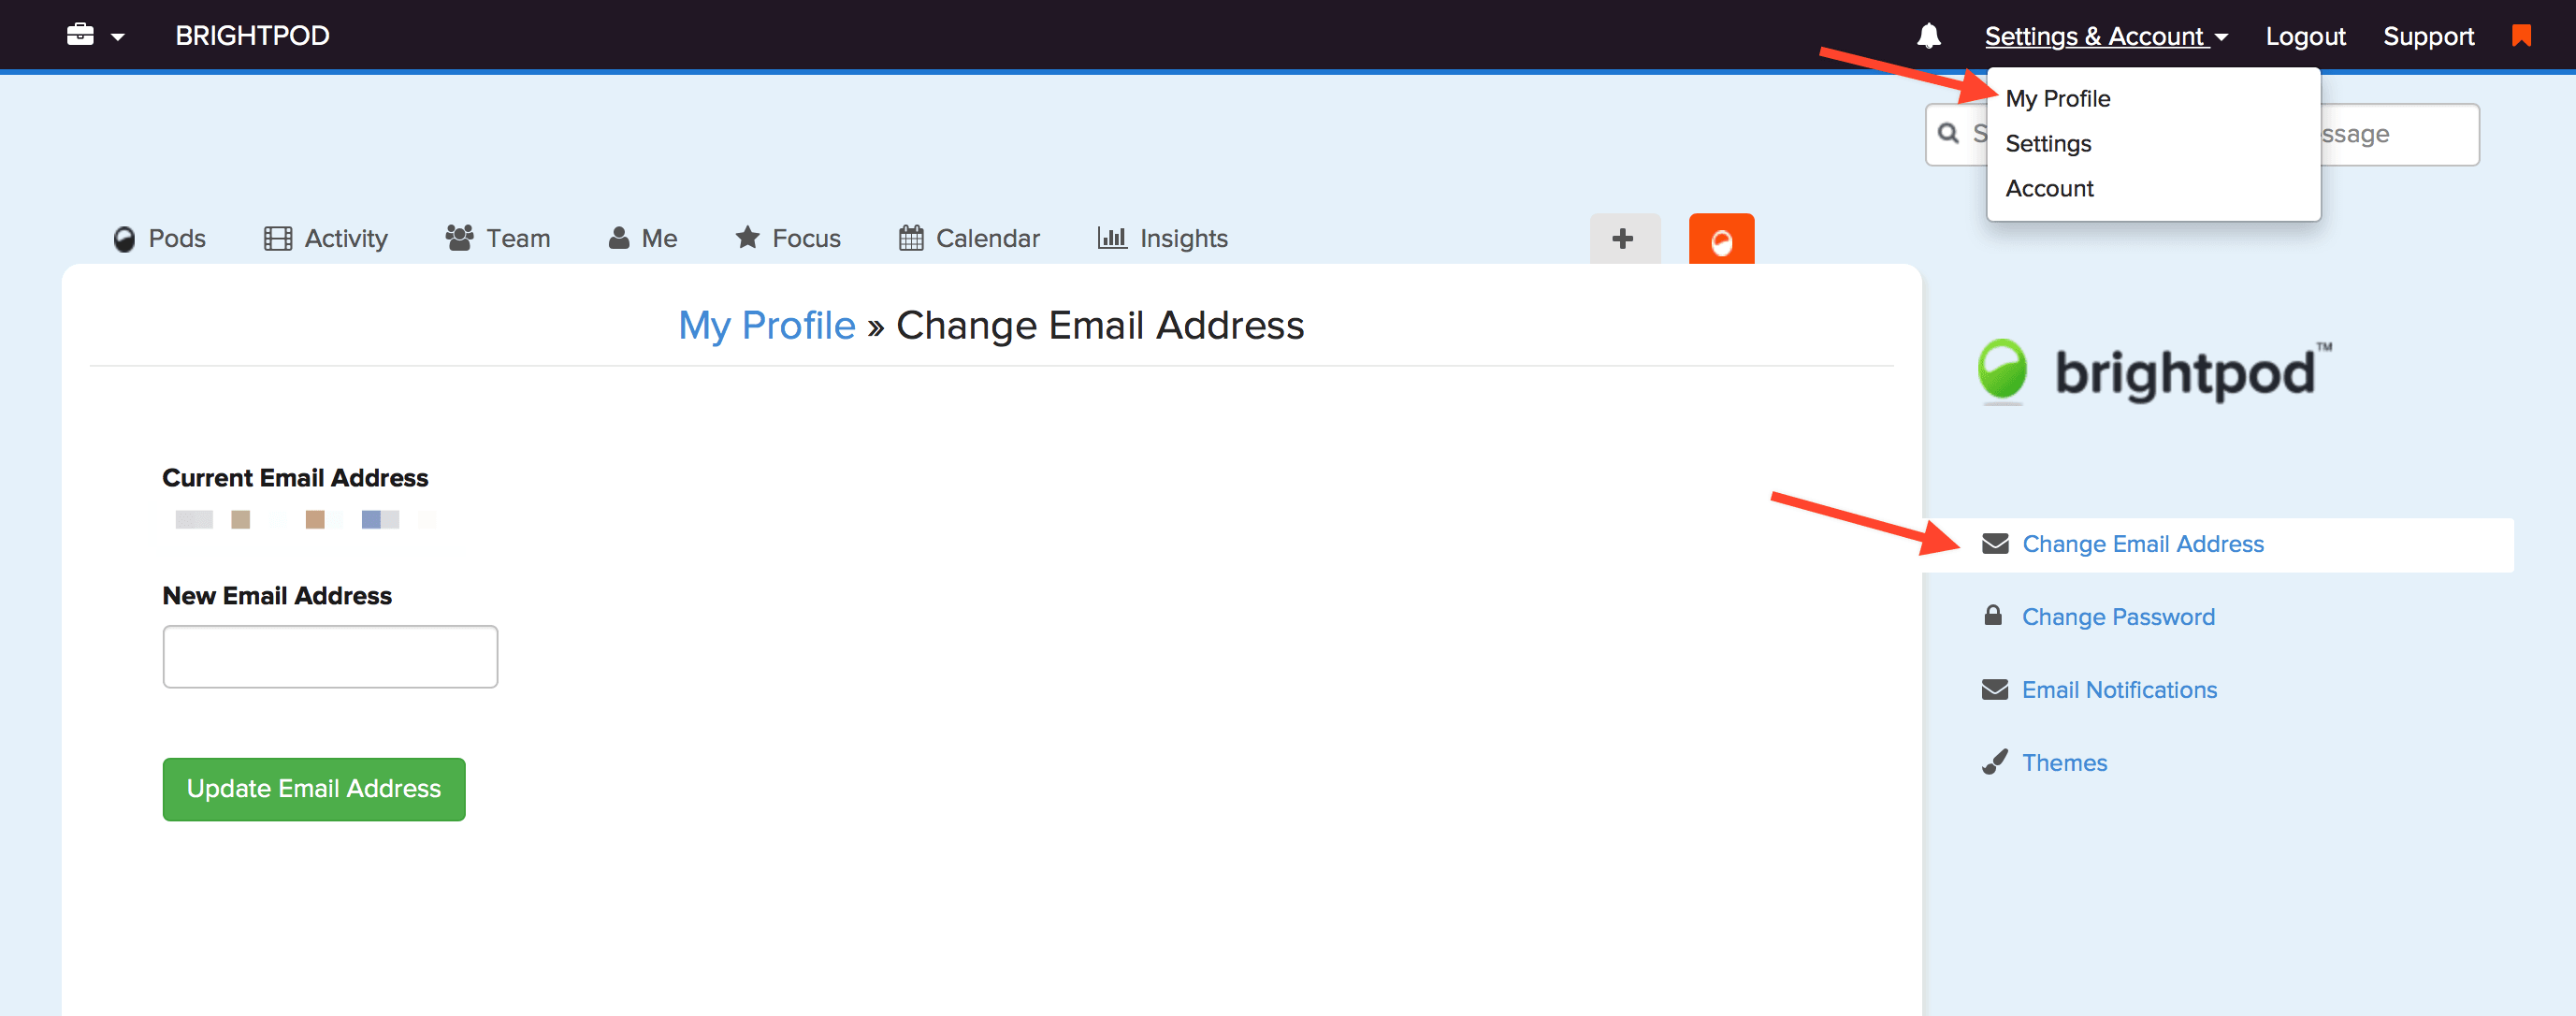 How can I change my email address